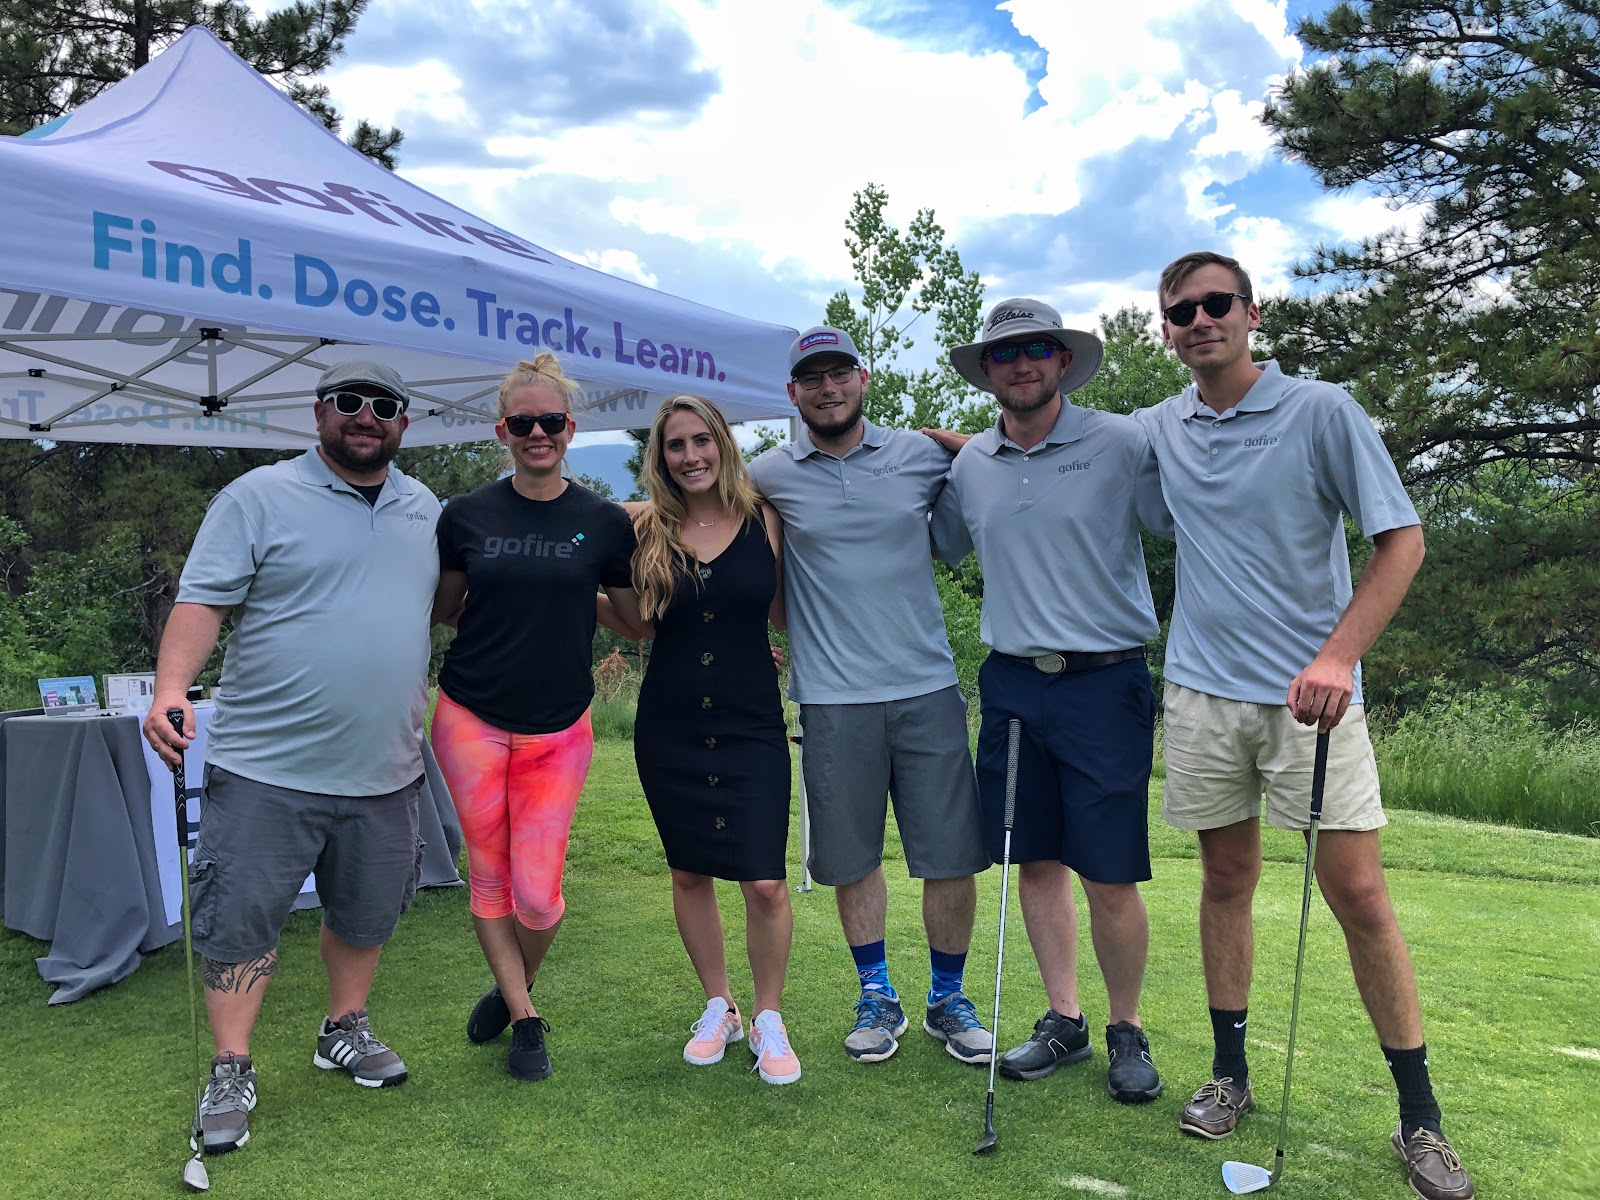 Gofire team at a charity golf event